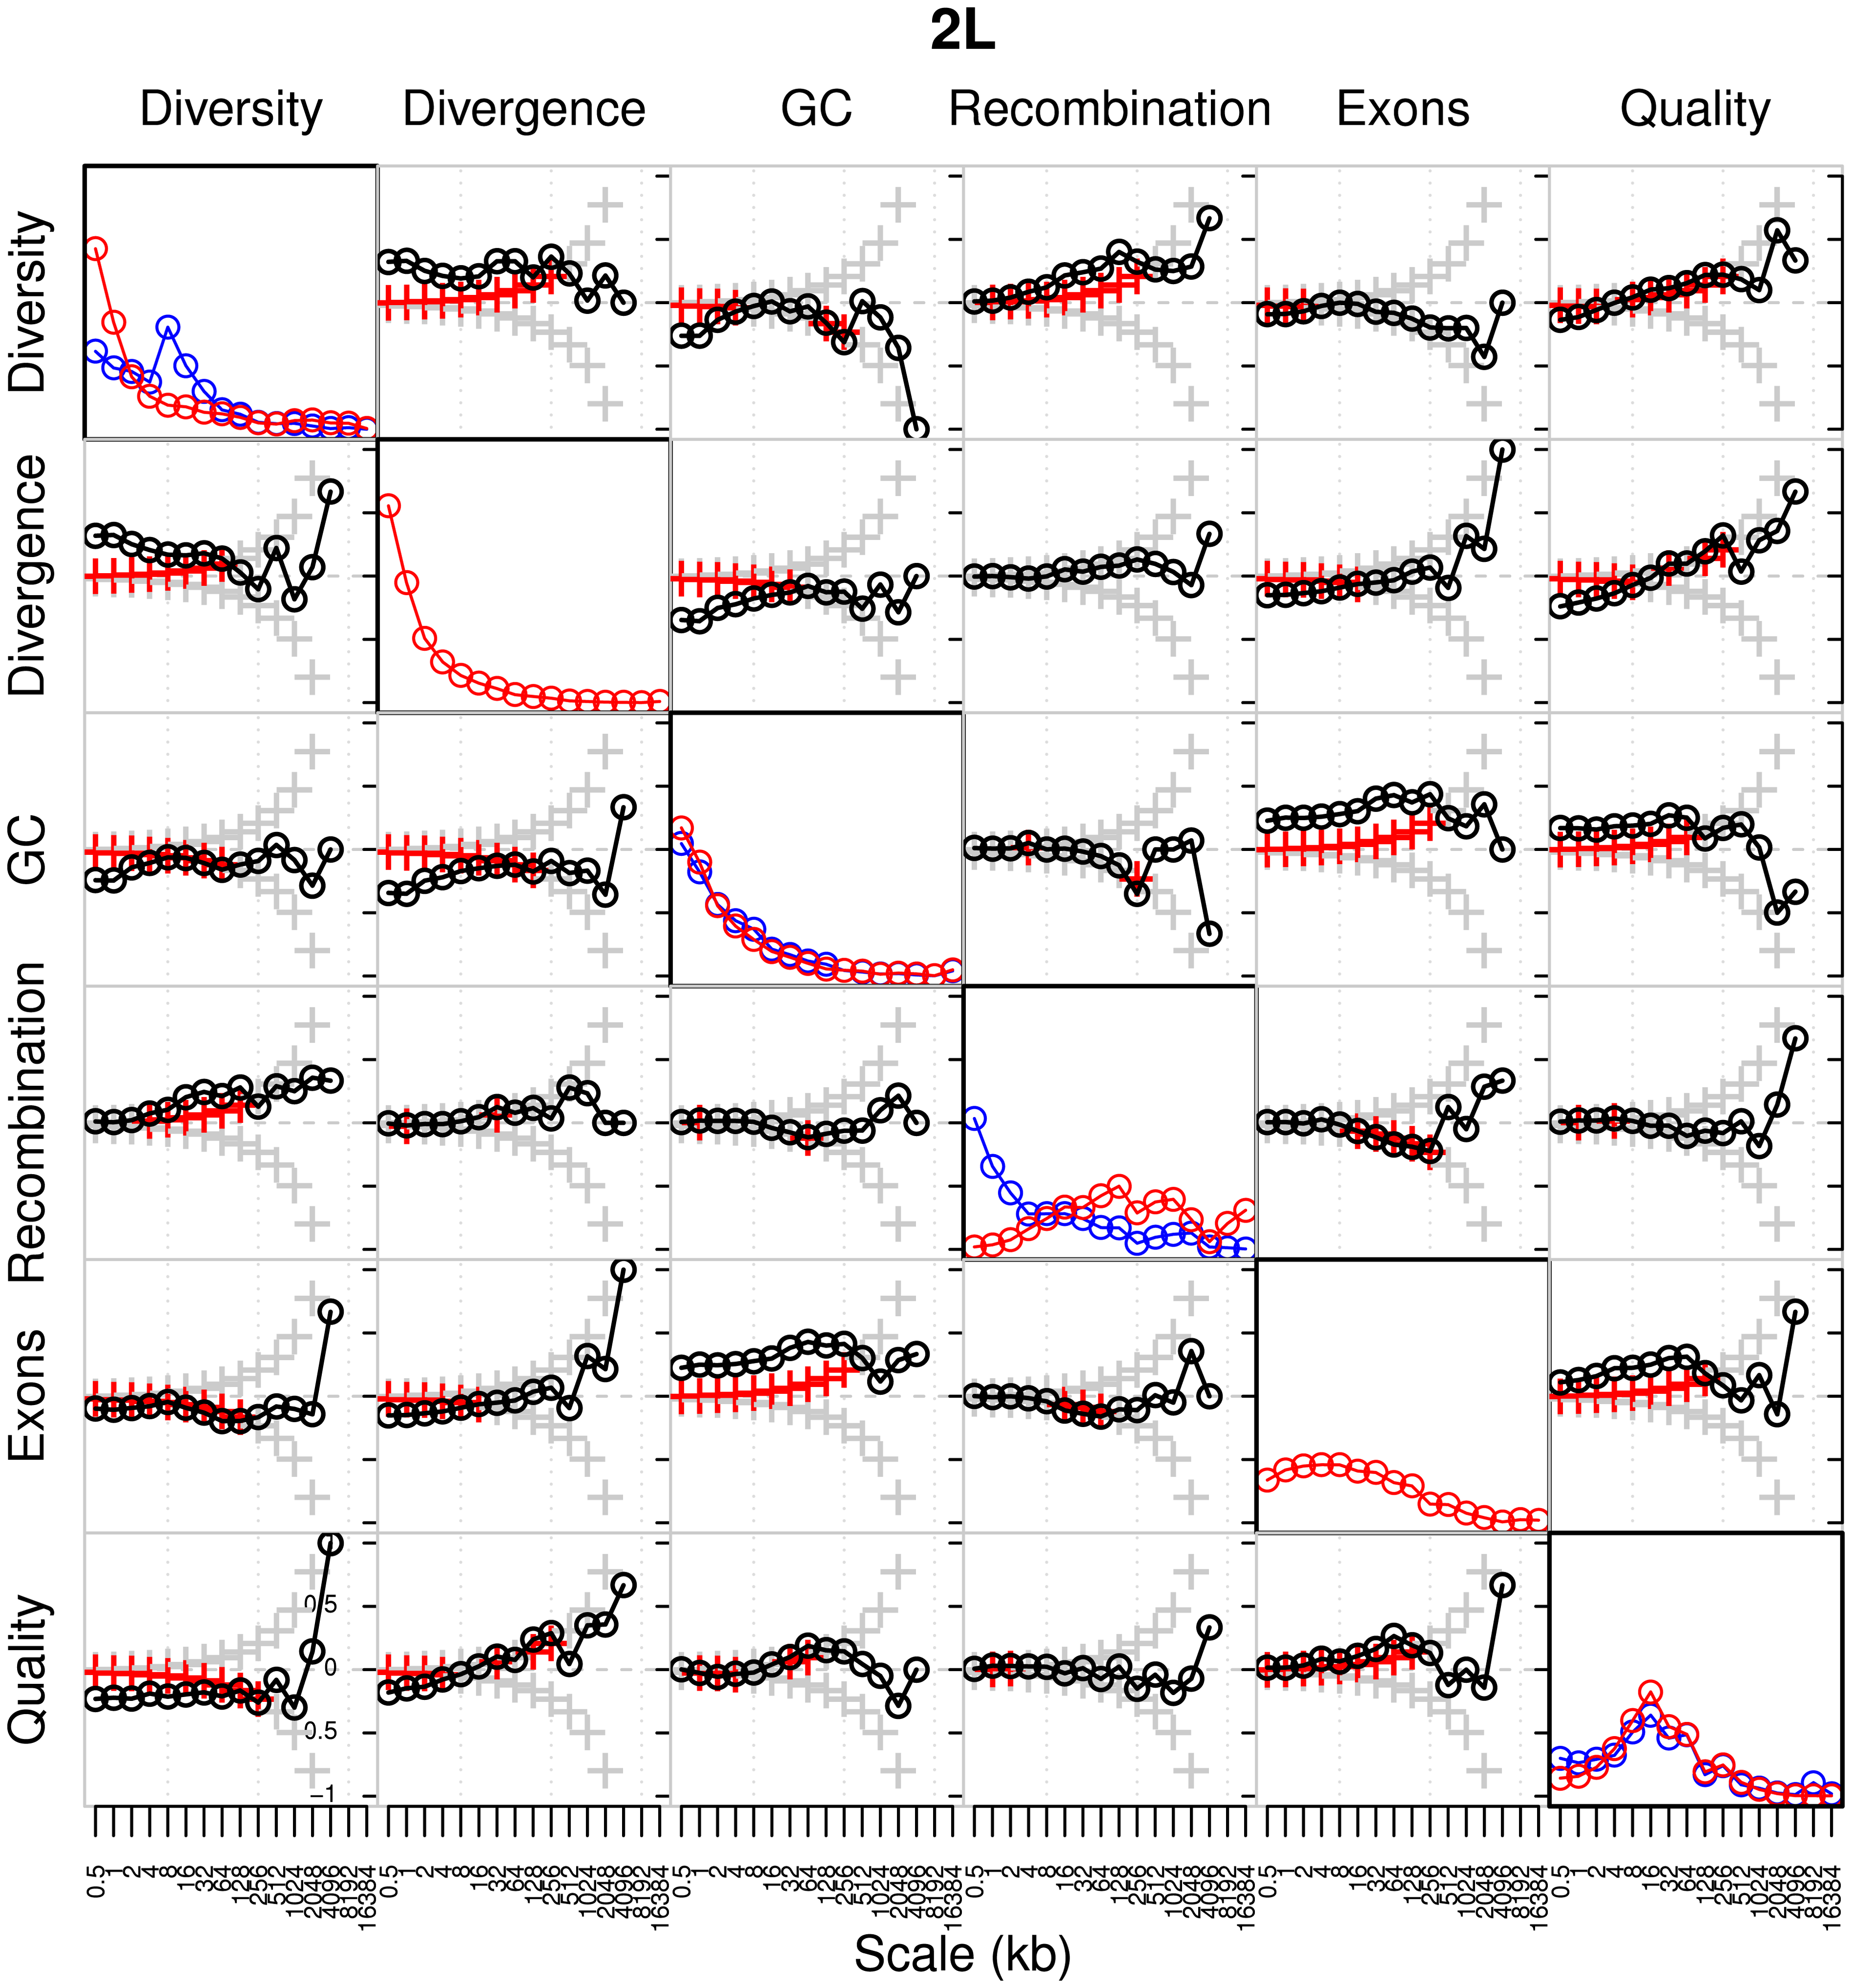 Global wavelet power spectrum and pairwise correlations of detail wavelet coefficients of RAL and RG data for chromosome arm 2L.